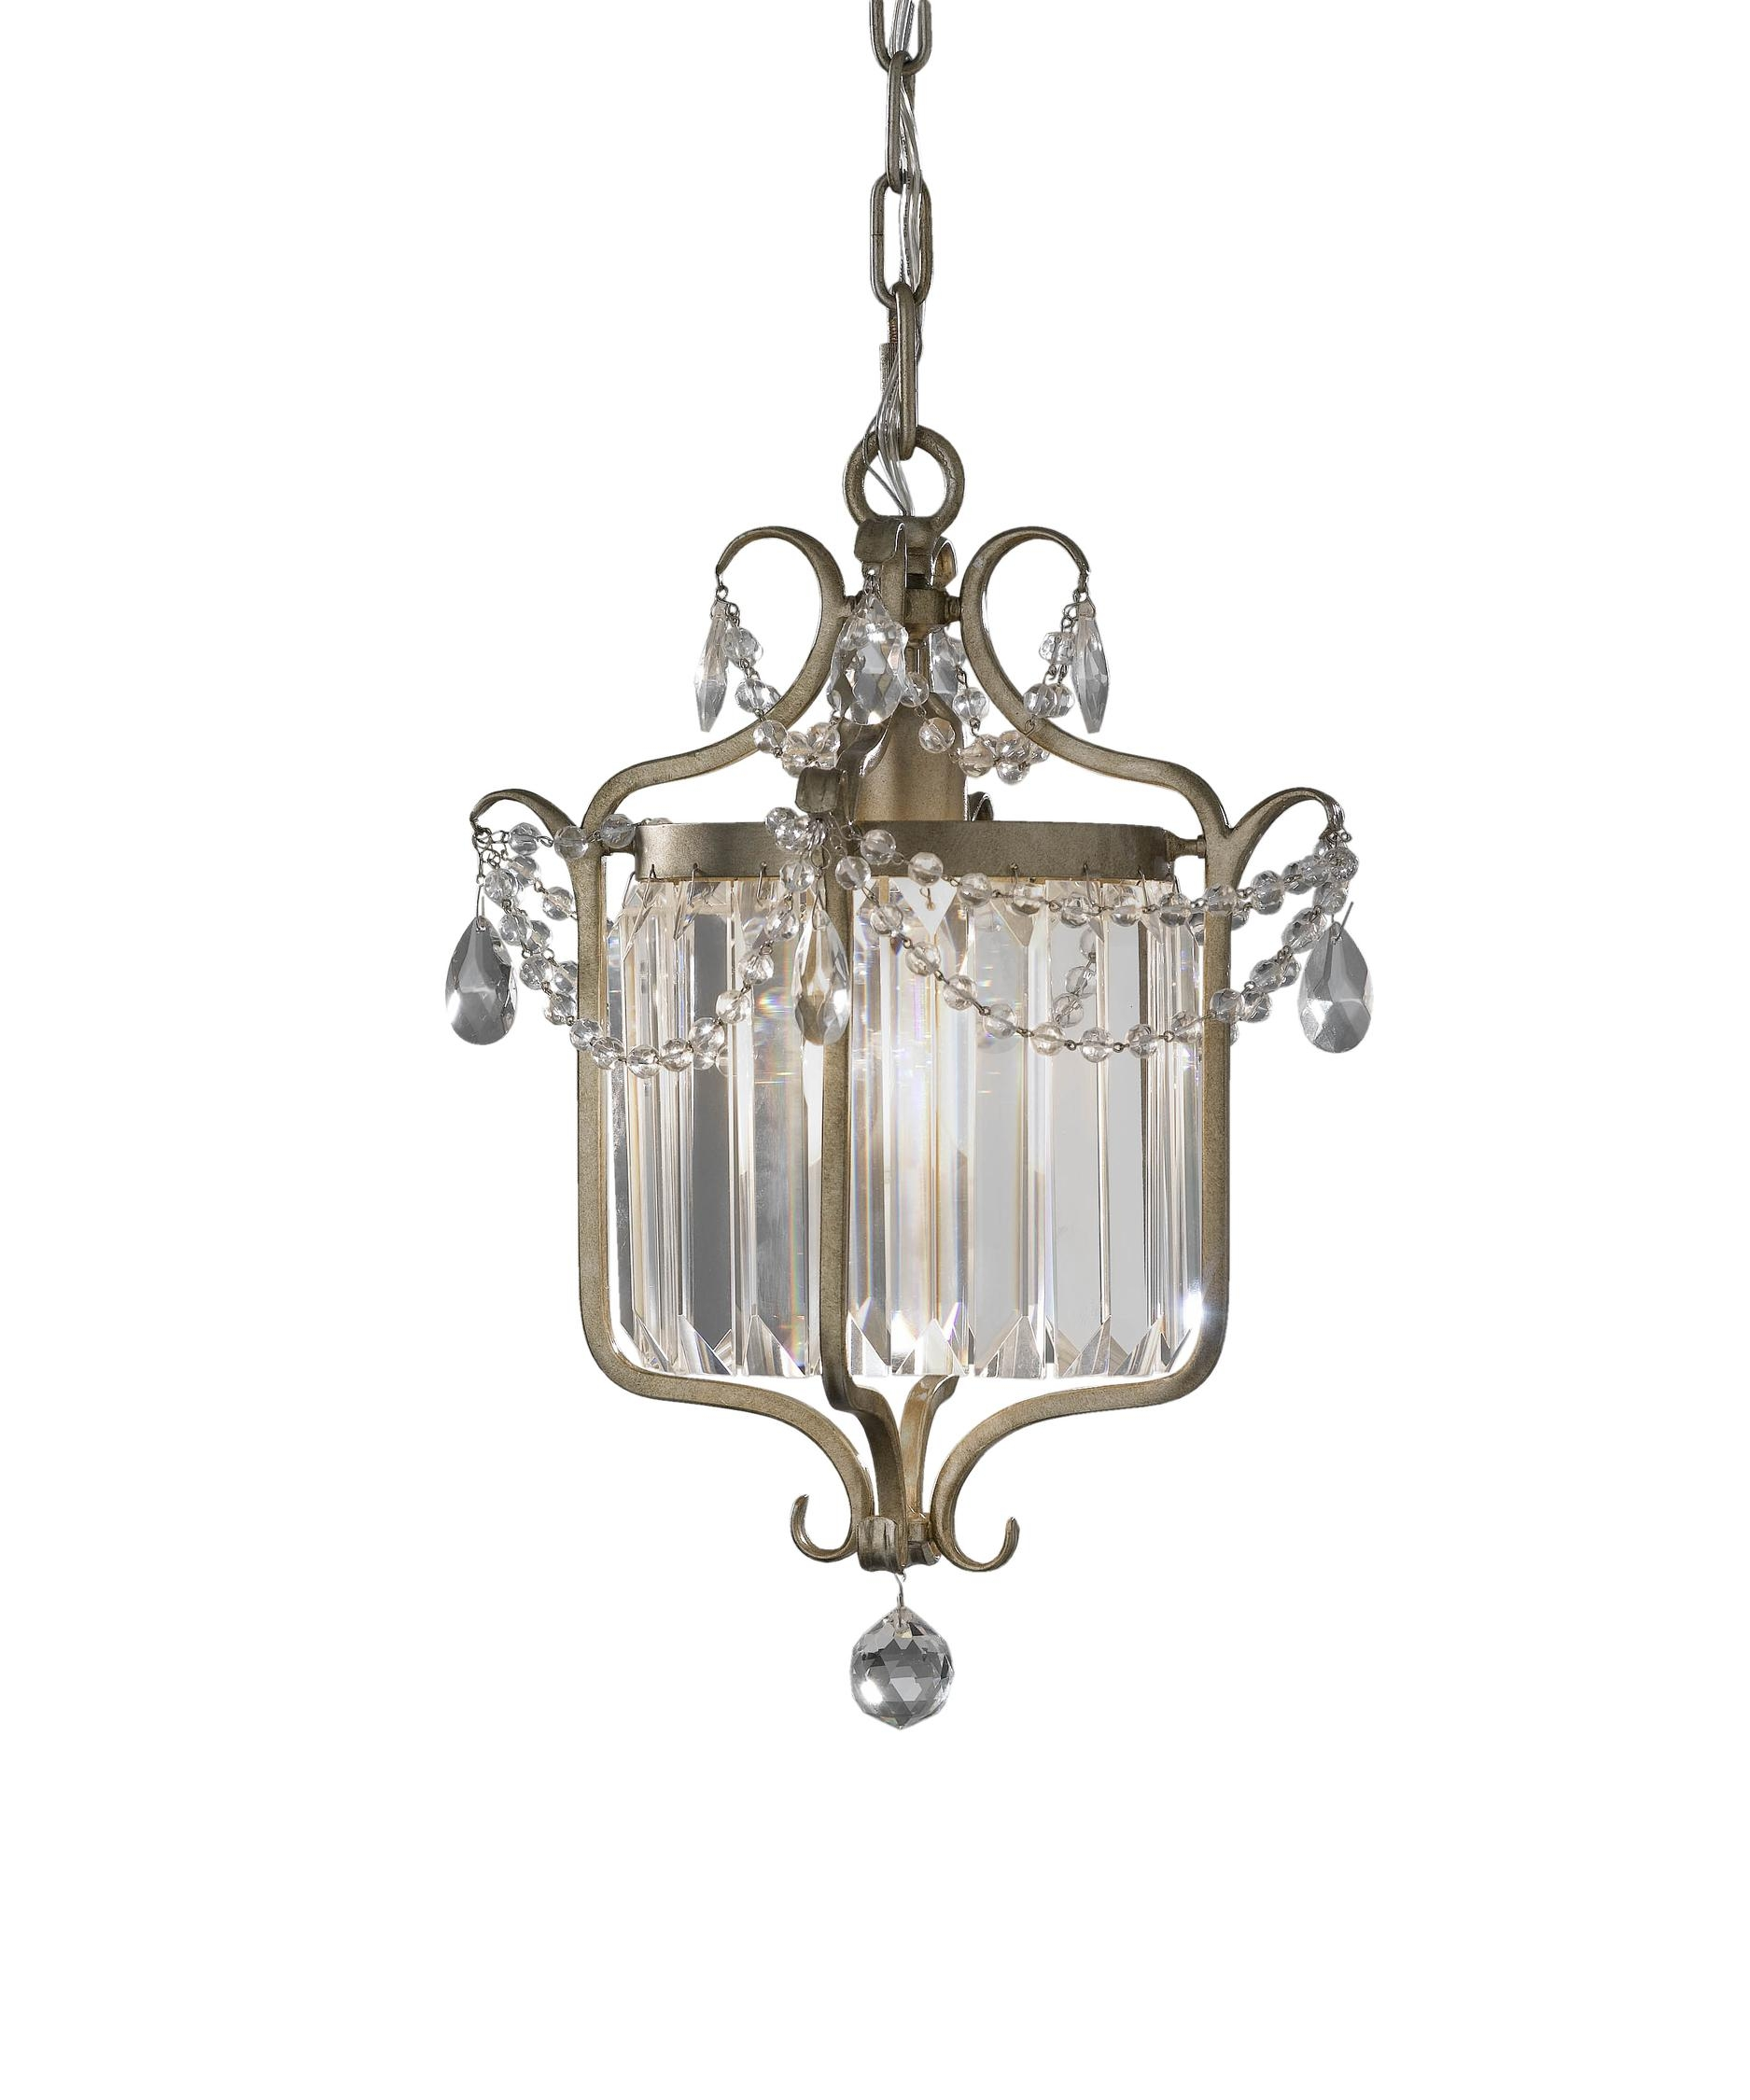 Murray Feiss F2473 1 Gianna 11 Inch Wide Foyer Pendant Capitol With Gianna Mini Chandeliers (Image 22 of 25)